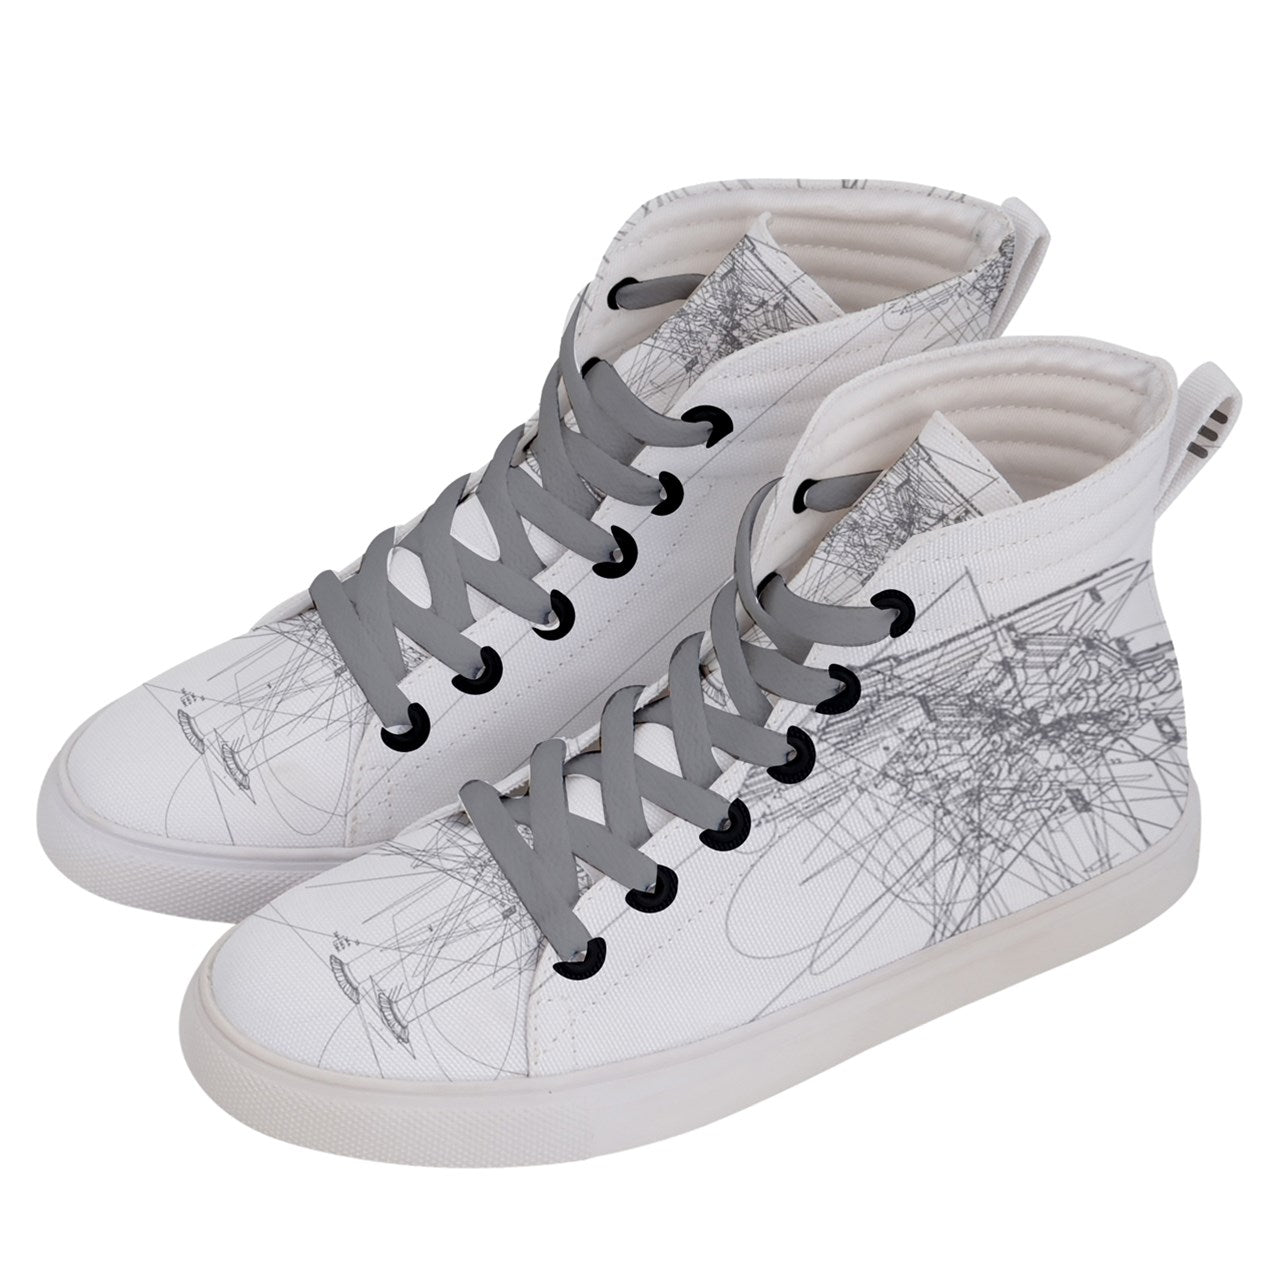 Taikkun Men's Hi-Top Skate Sneakers (Kun series)